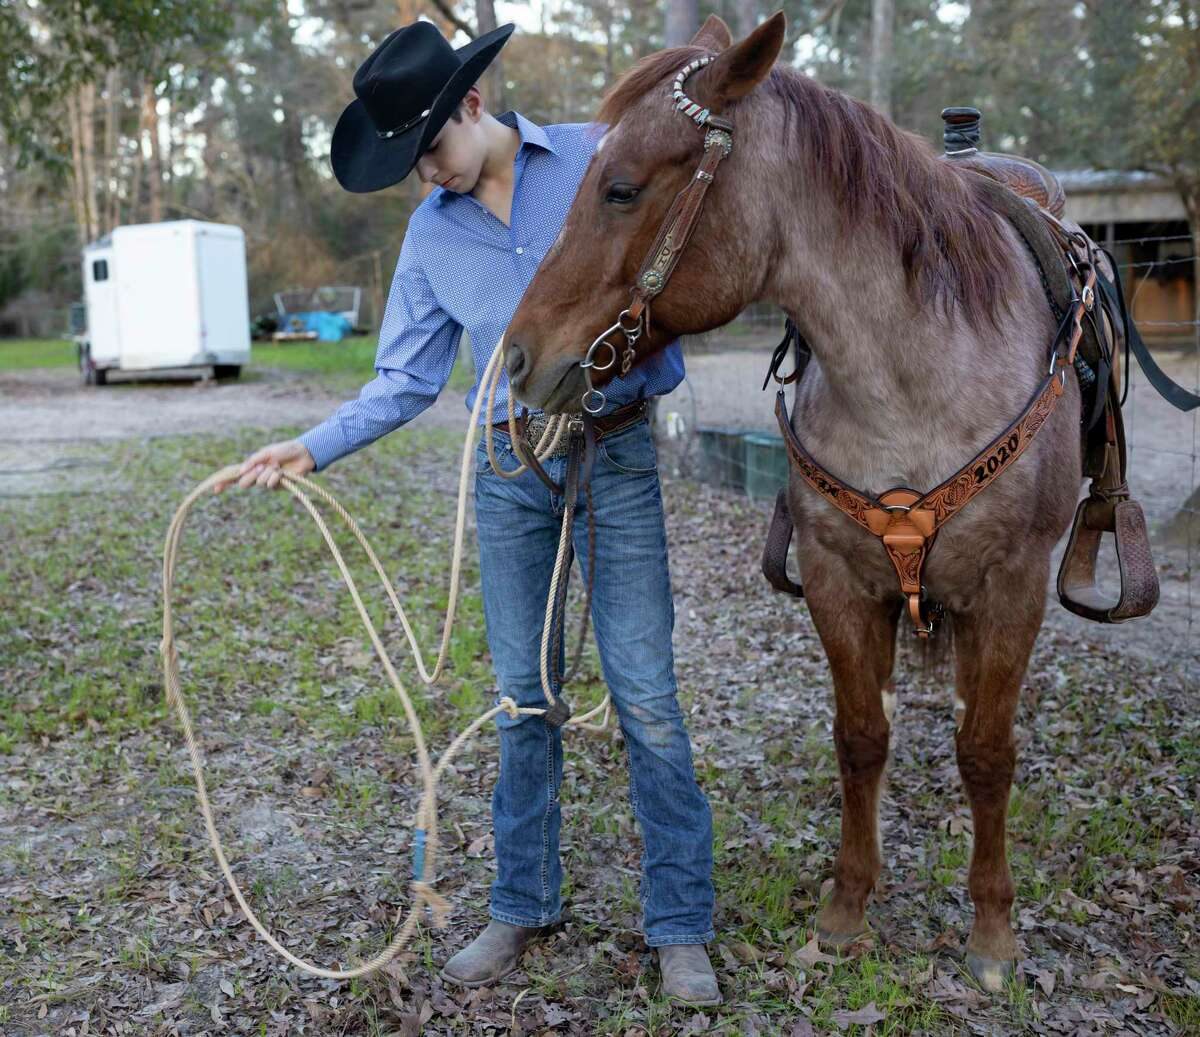 Dean Holtkamp, 14, checks his lasso next to his horse Busters' Prince Roan, in Conroe, Friday, Feb 28, 2020. Holtkamp has qualified to compete at the state finals in tie-down calf roping, chute dogging and ribbon roping.